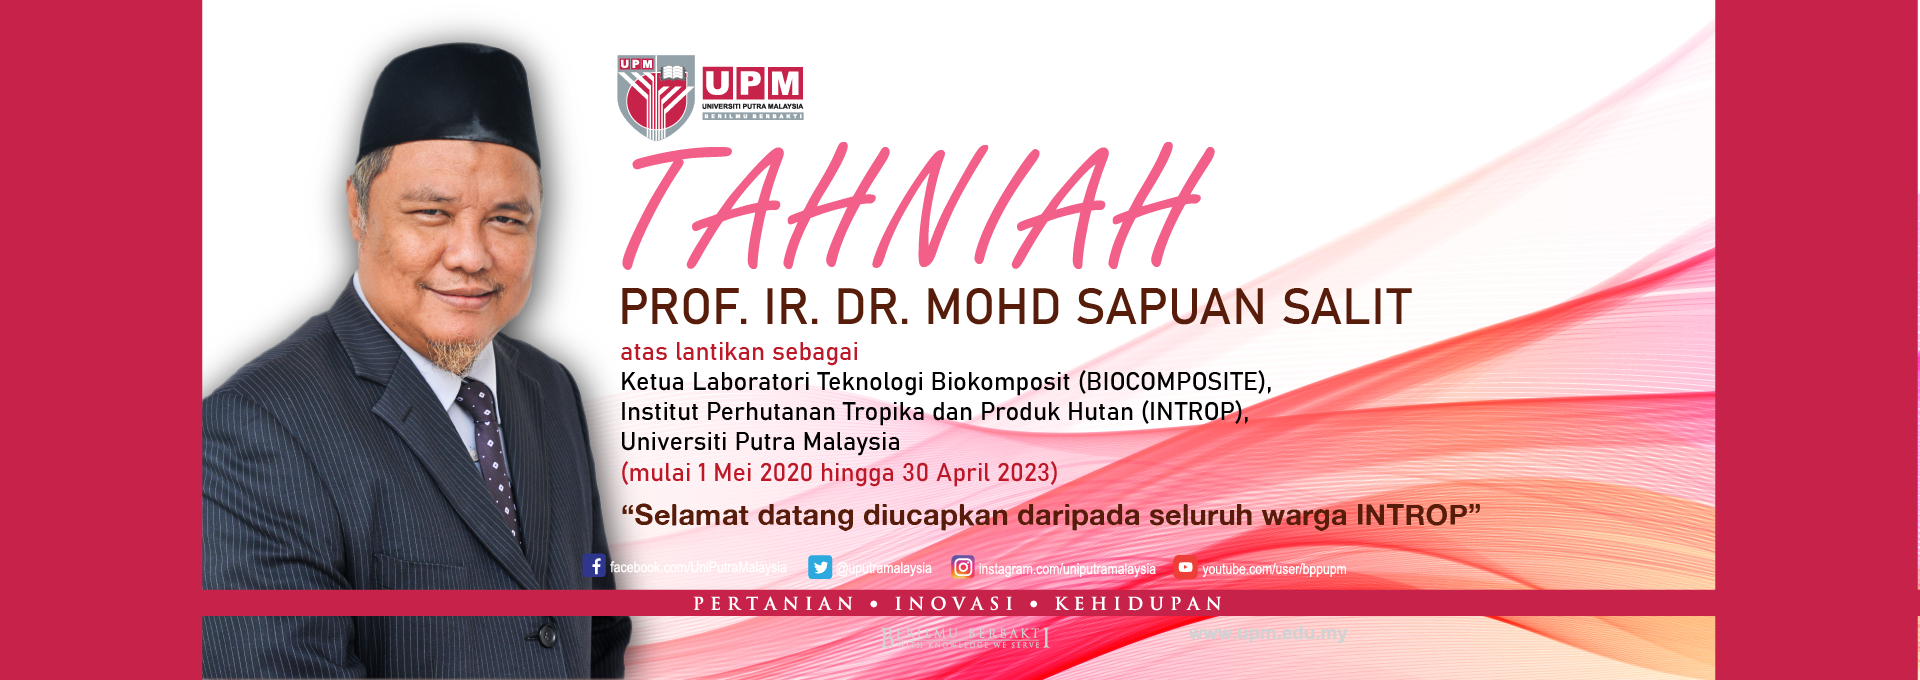 APPOINTMENT OF YBHG. PROF. IR. DR. MOHD SAPUAN SALIT AS THE HEAD OF LABORATORY OF BIOCOMPOSITE TECHNOLOGY, INTROP (1 MAY 2020)